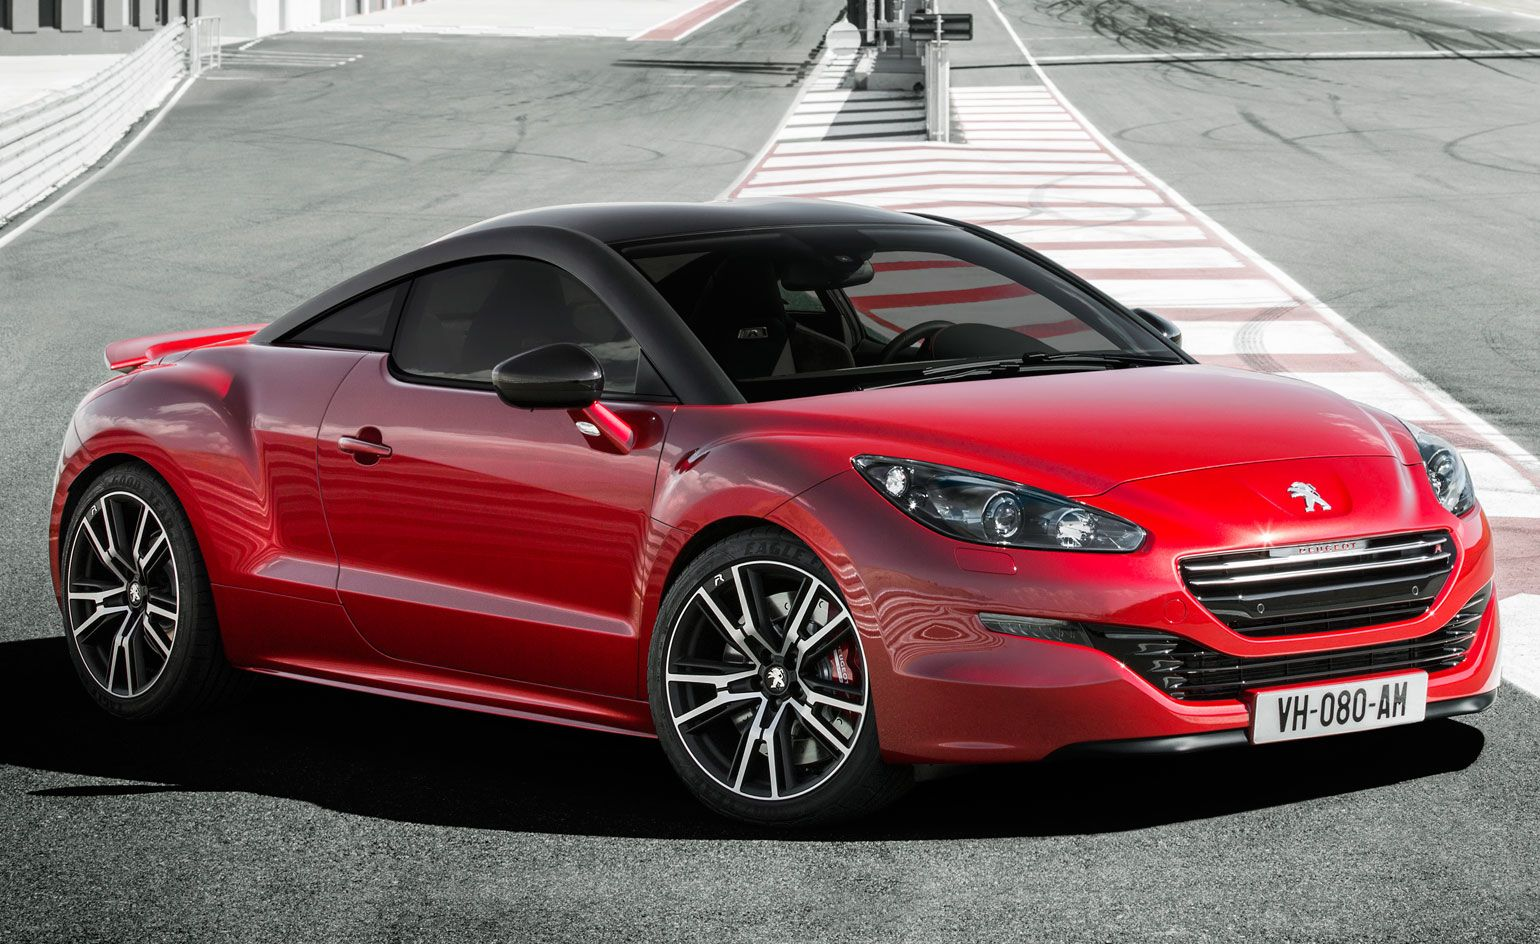 les 25 meilleures id es de la cat gorie peugeot rcz sur pinterest le parking auto. Black Bedroom Furniture Sets. Home Design Ideas